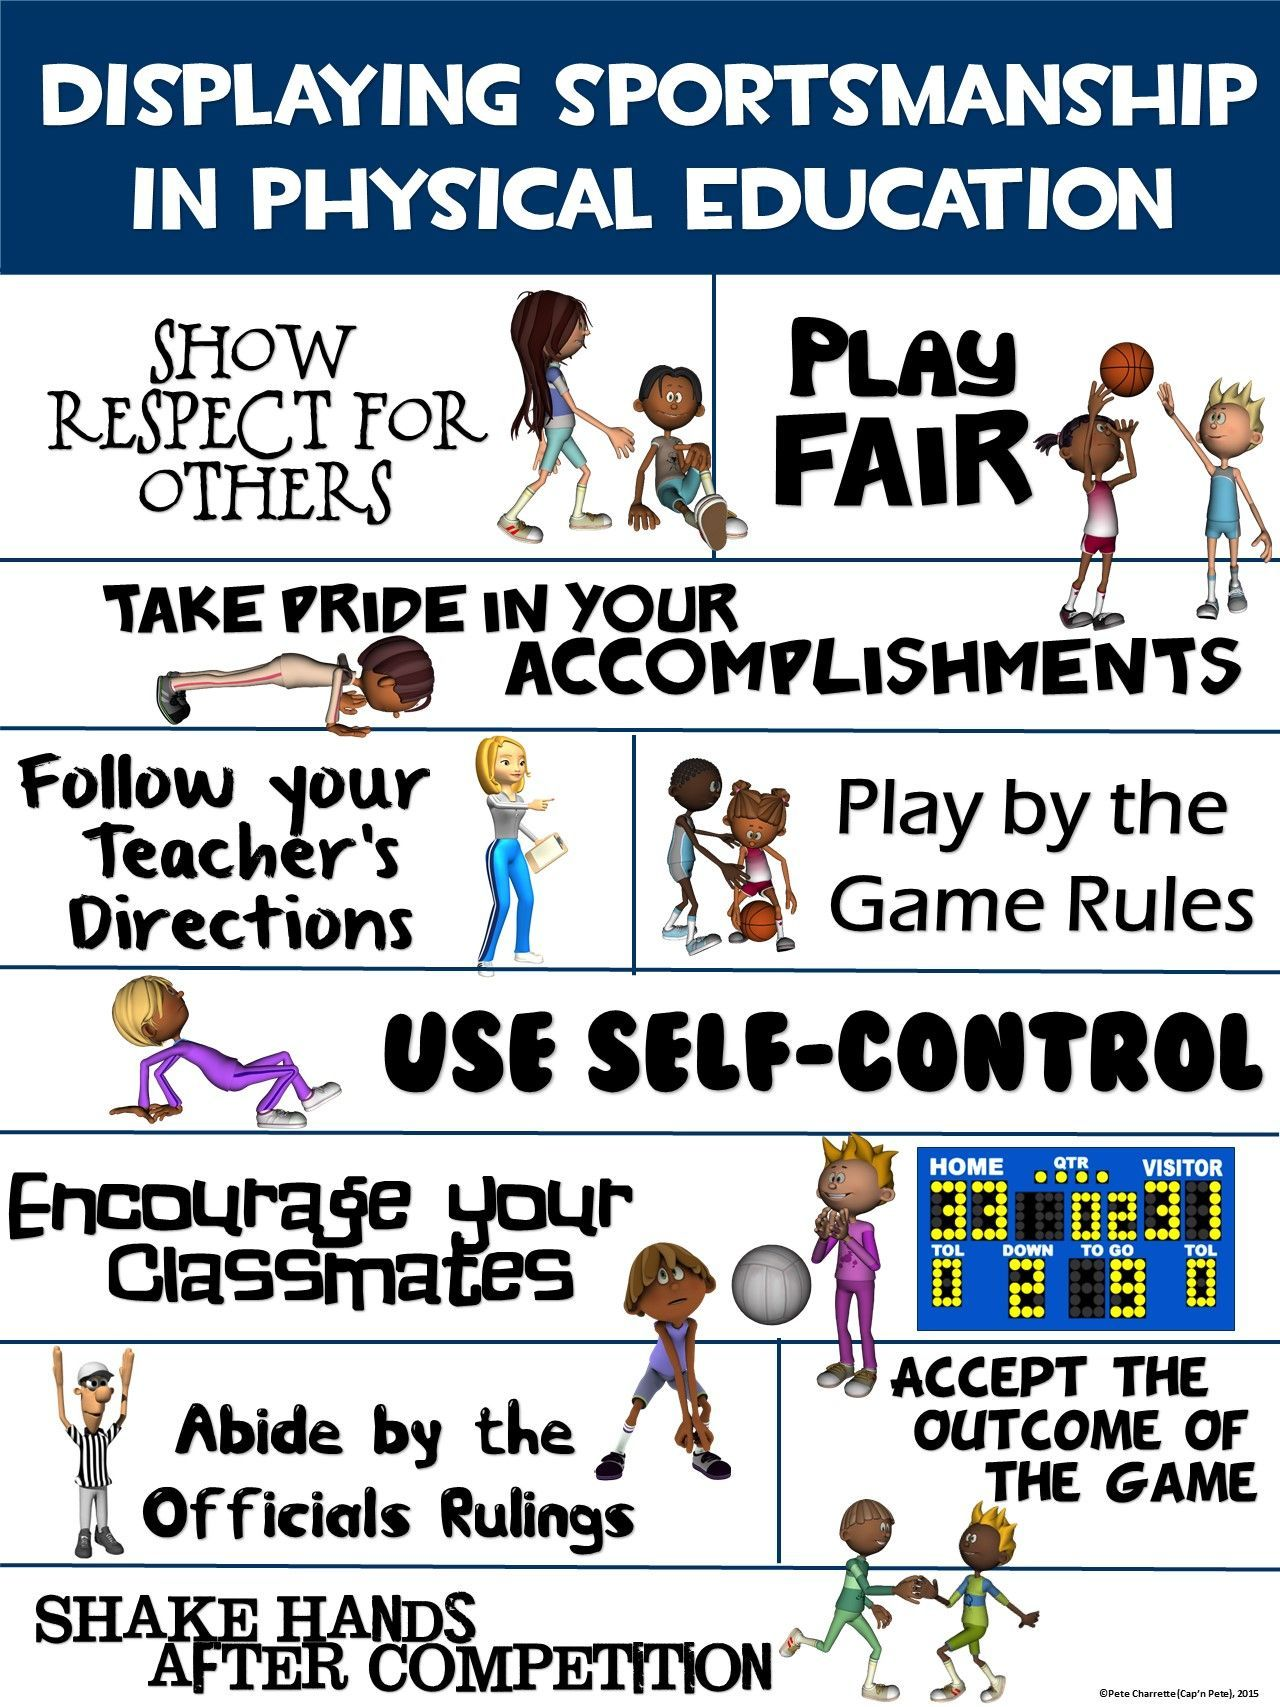 Pe Poster Displaying Sportsmanship In Physical Education